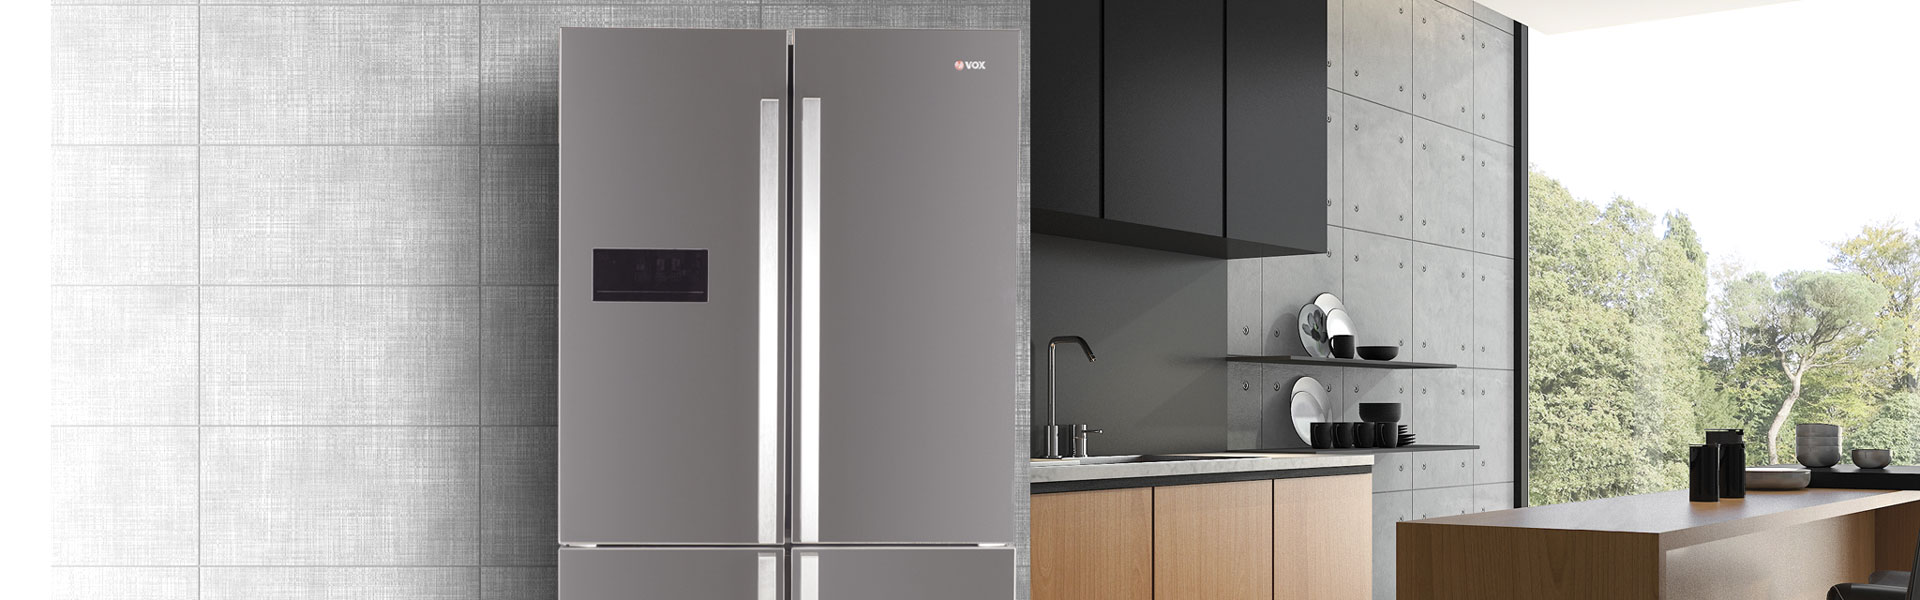 Combined refrigerators with bottom freezer